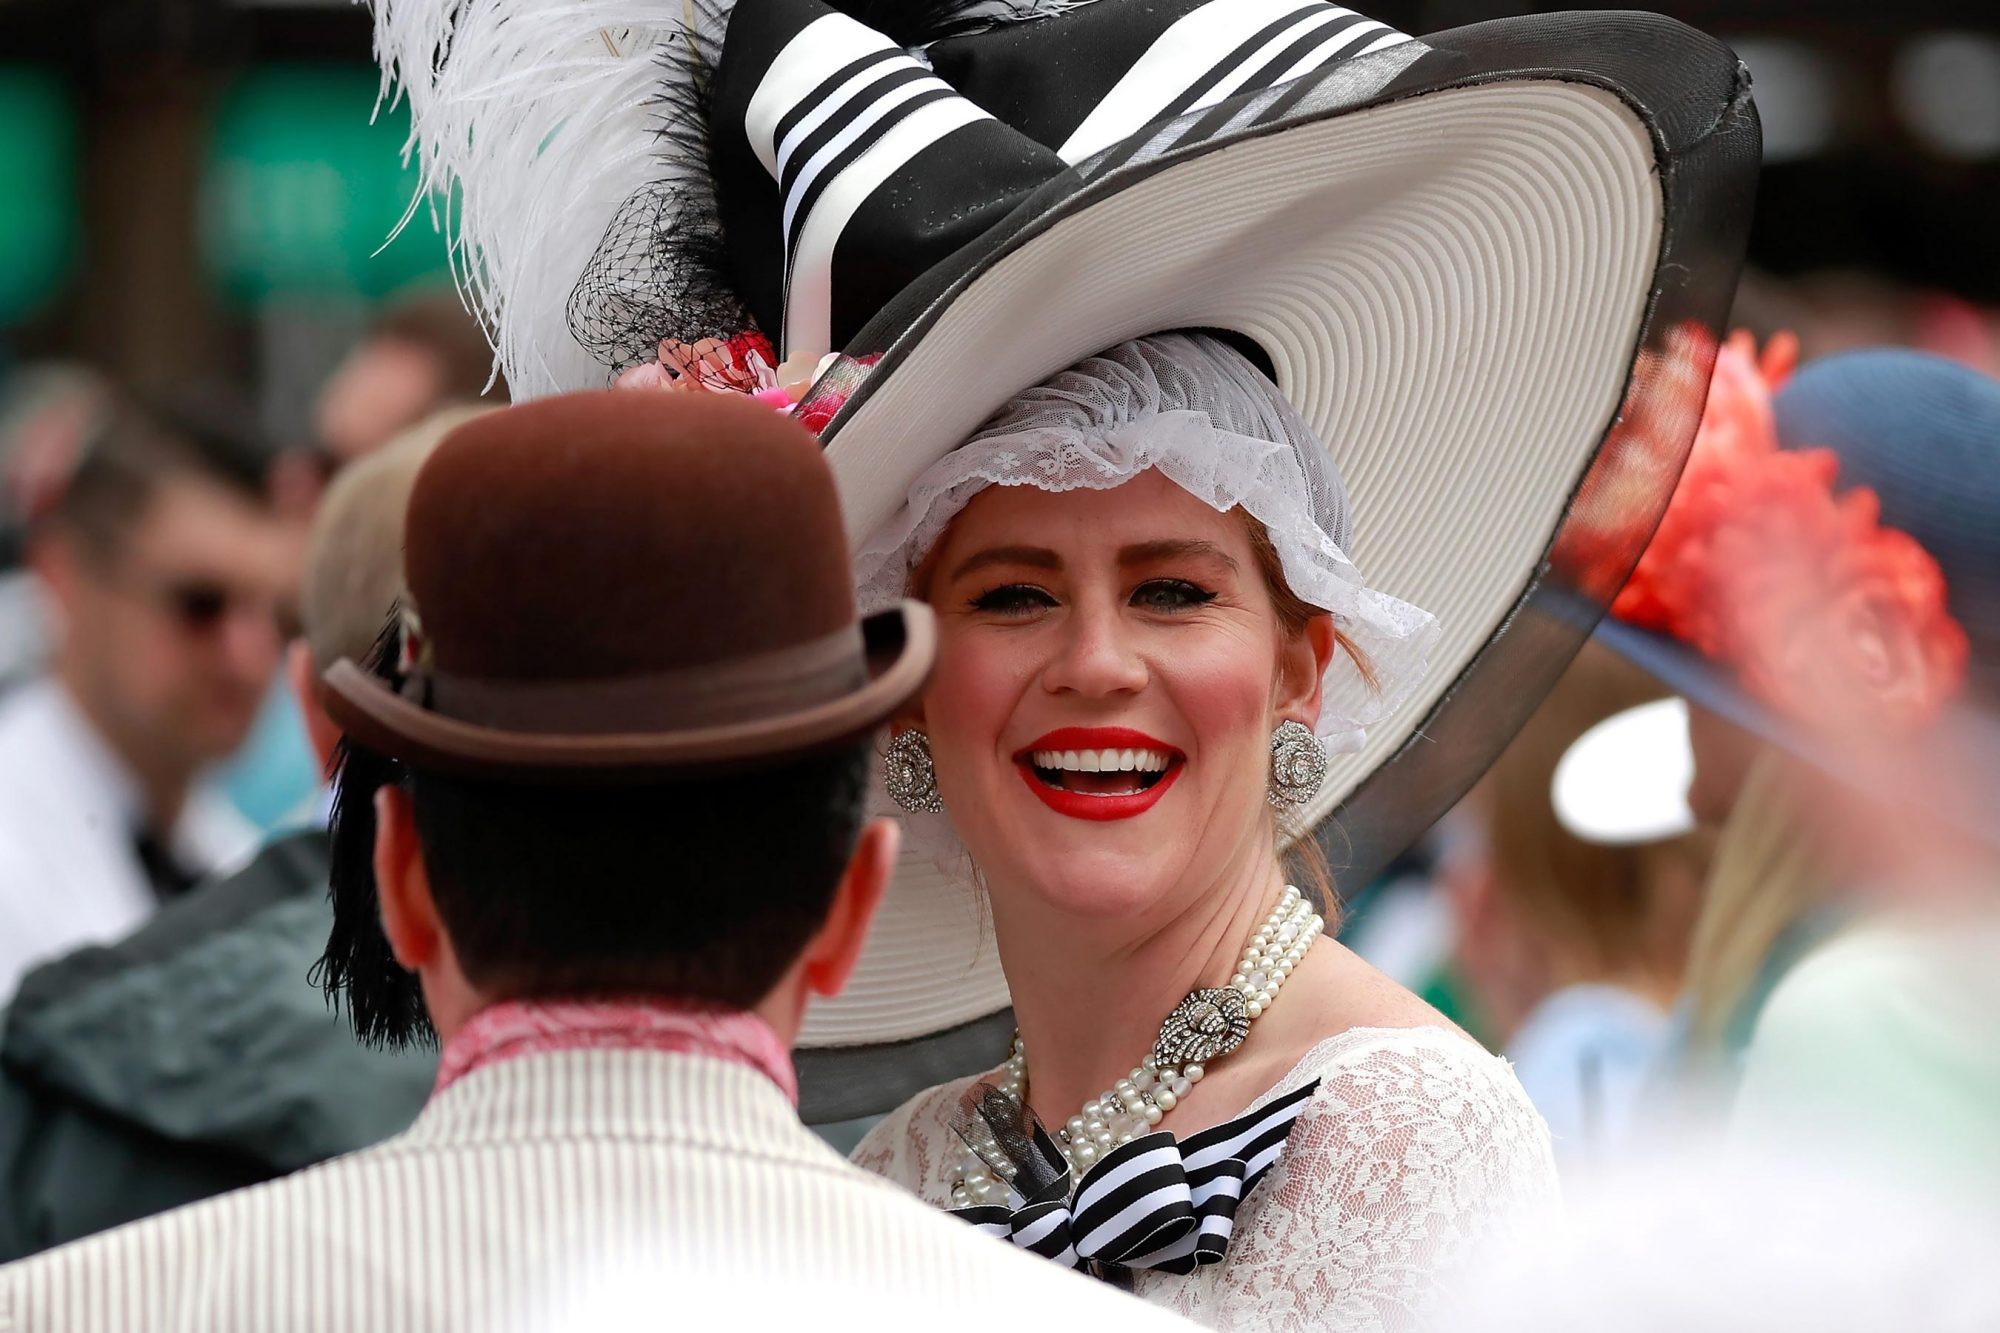 A woman wearing a festive hat looks on prior to the 143rd running of the Kentucky Derby